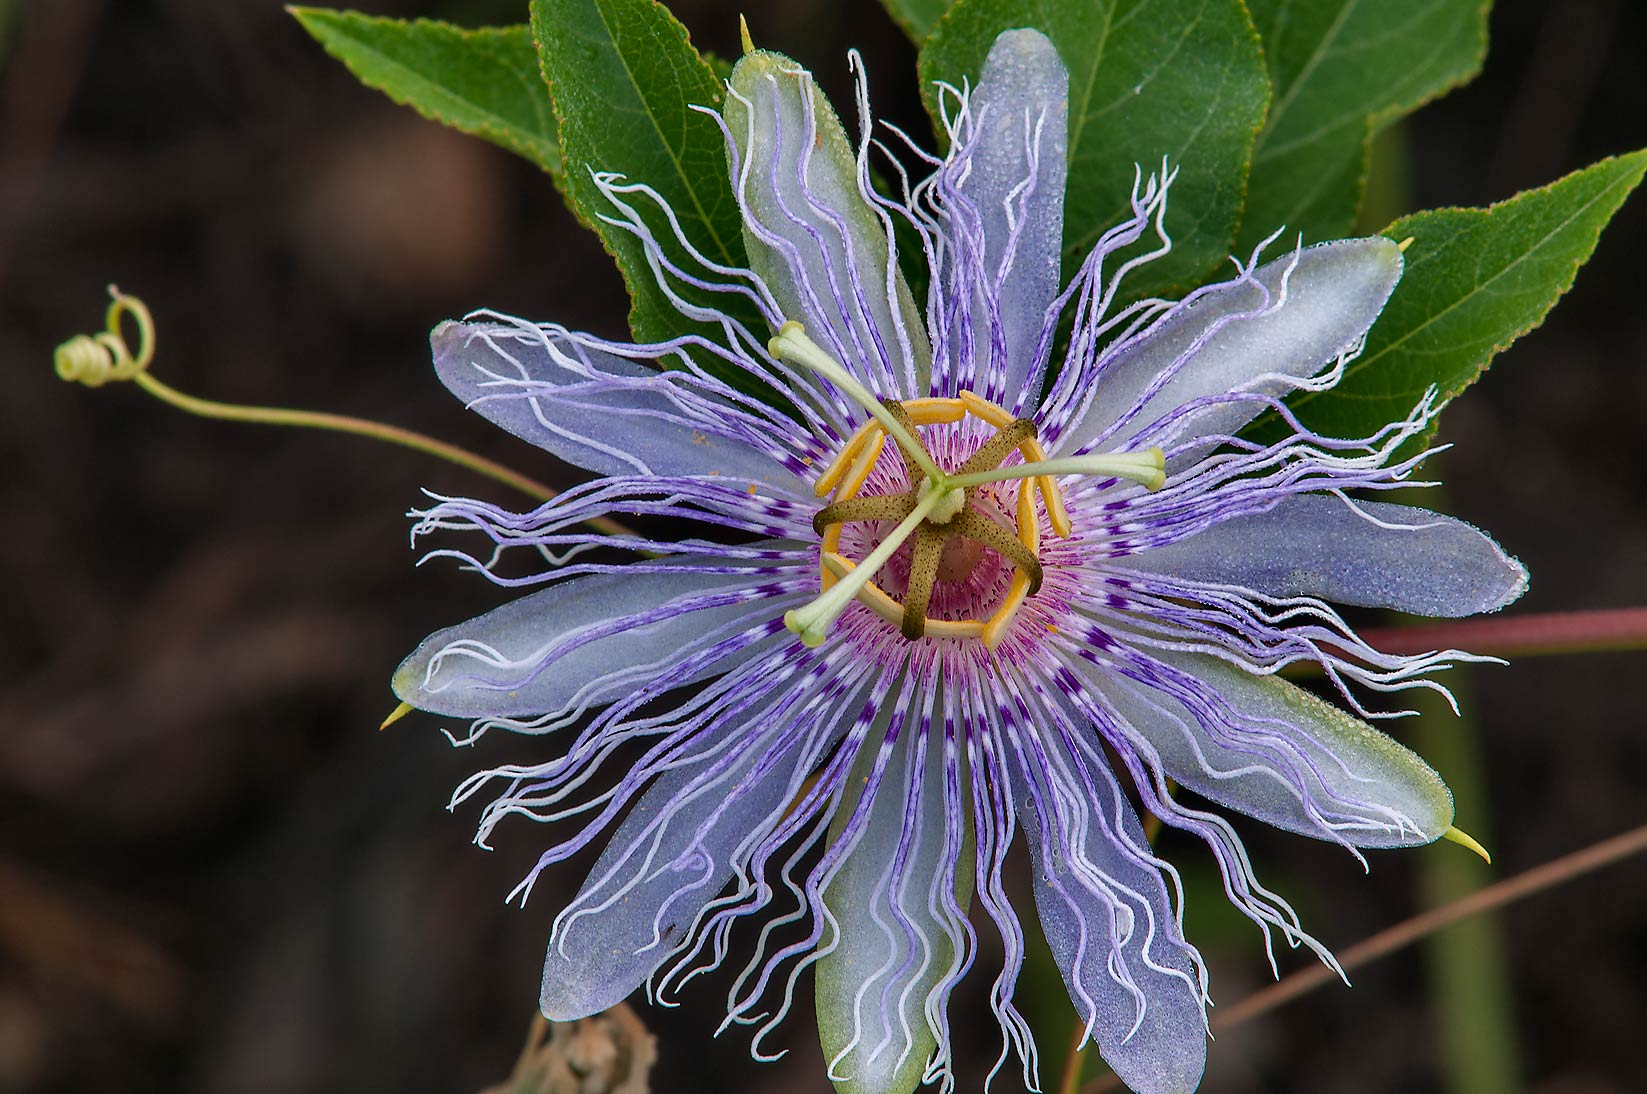 Passion flower (passiflora) with a tendril under...lines in Lake Bryan Park. Bryan, Texas